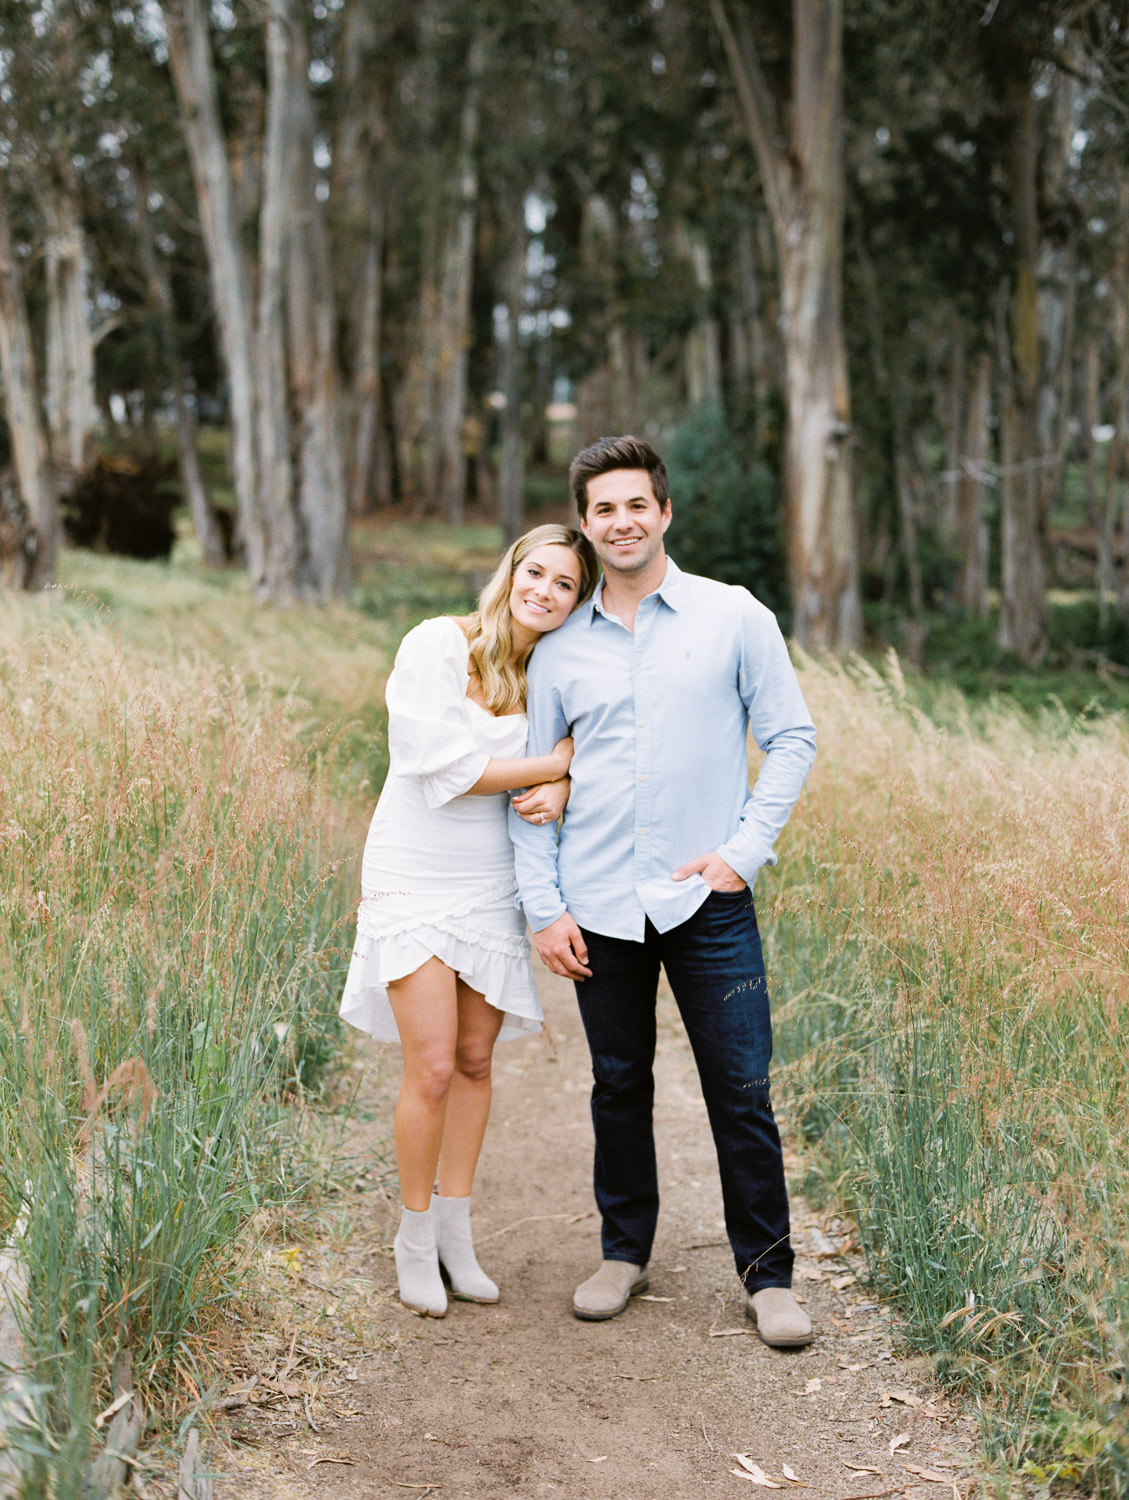 Ashley-Rae-Studio-San-Luis-Obispo-Engagement-Session-Santa-Barbara-Wedding-Photographer-116.jpg